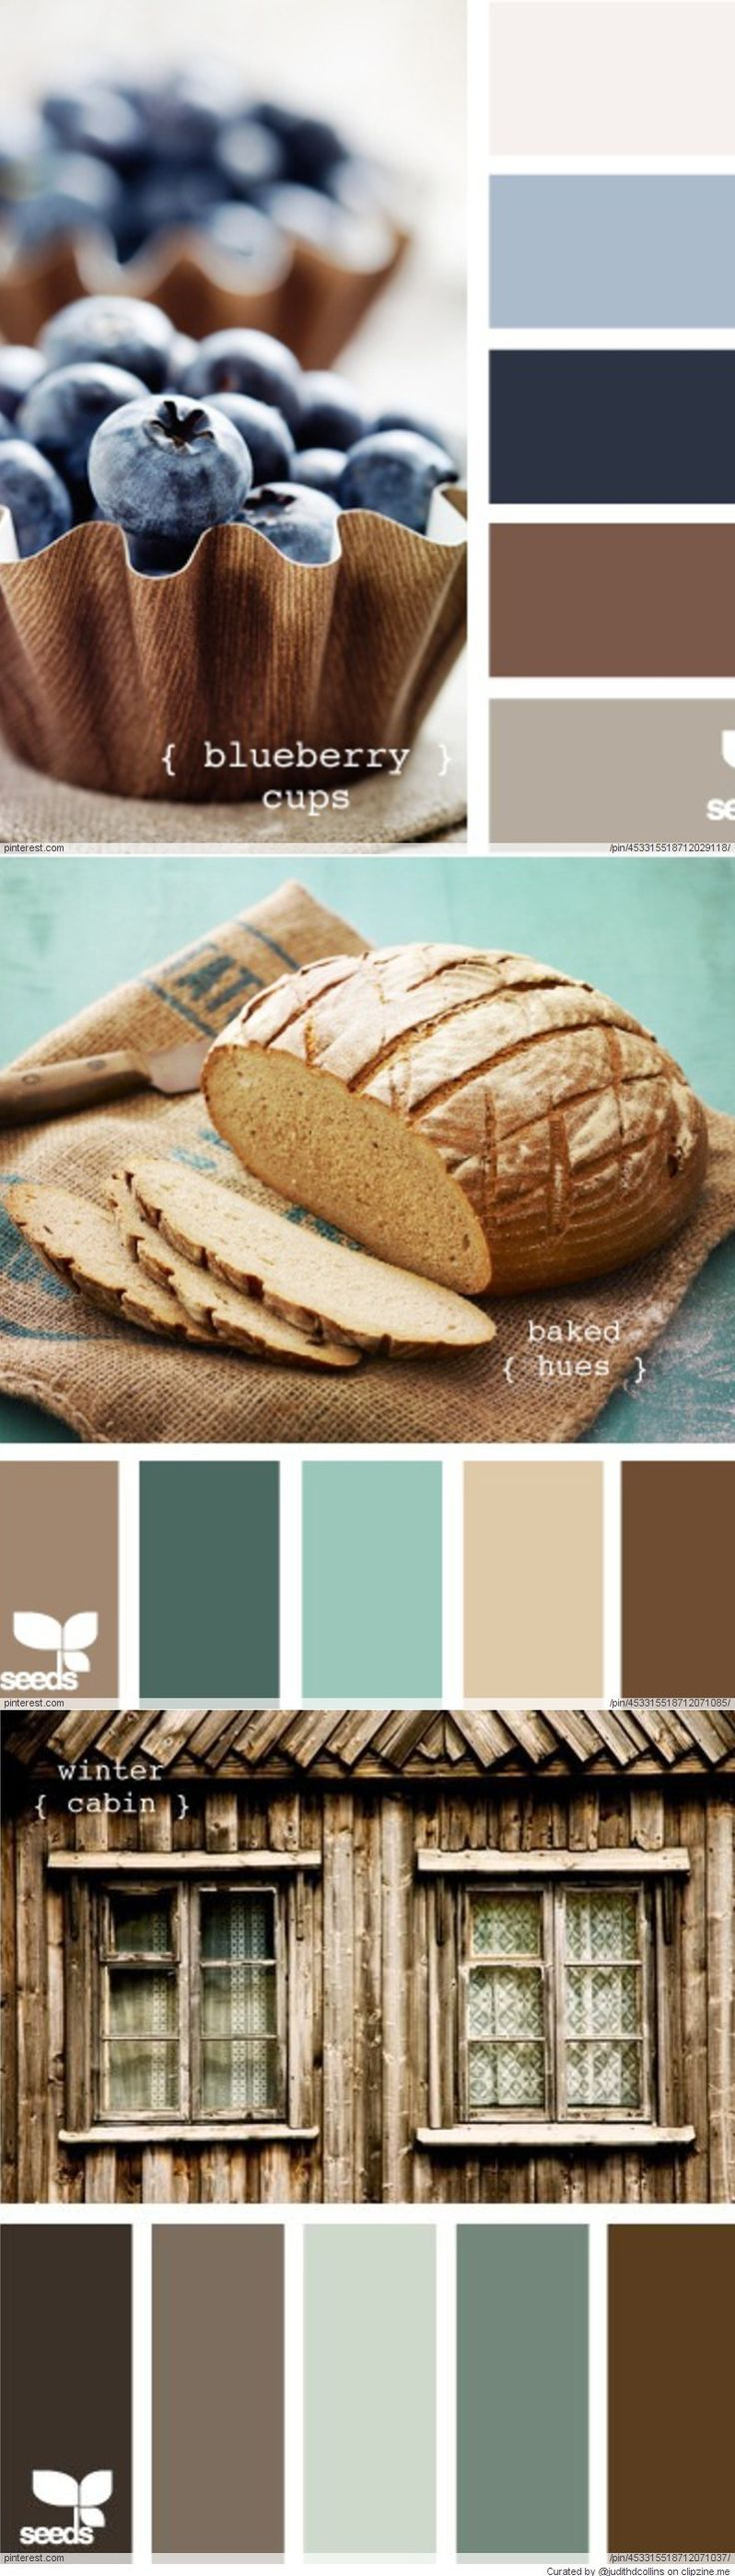 Teal black gray white color scheme i do salon and spa pinterest - Love The Bread Color Way Substitute The Dull Teal For Bright Accent Pops Of Turquoise